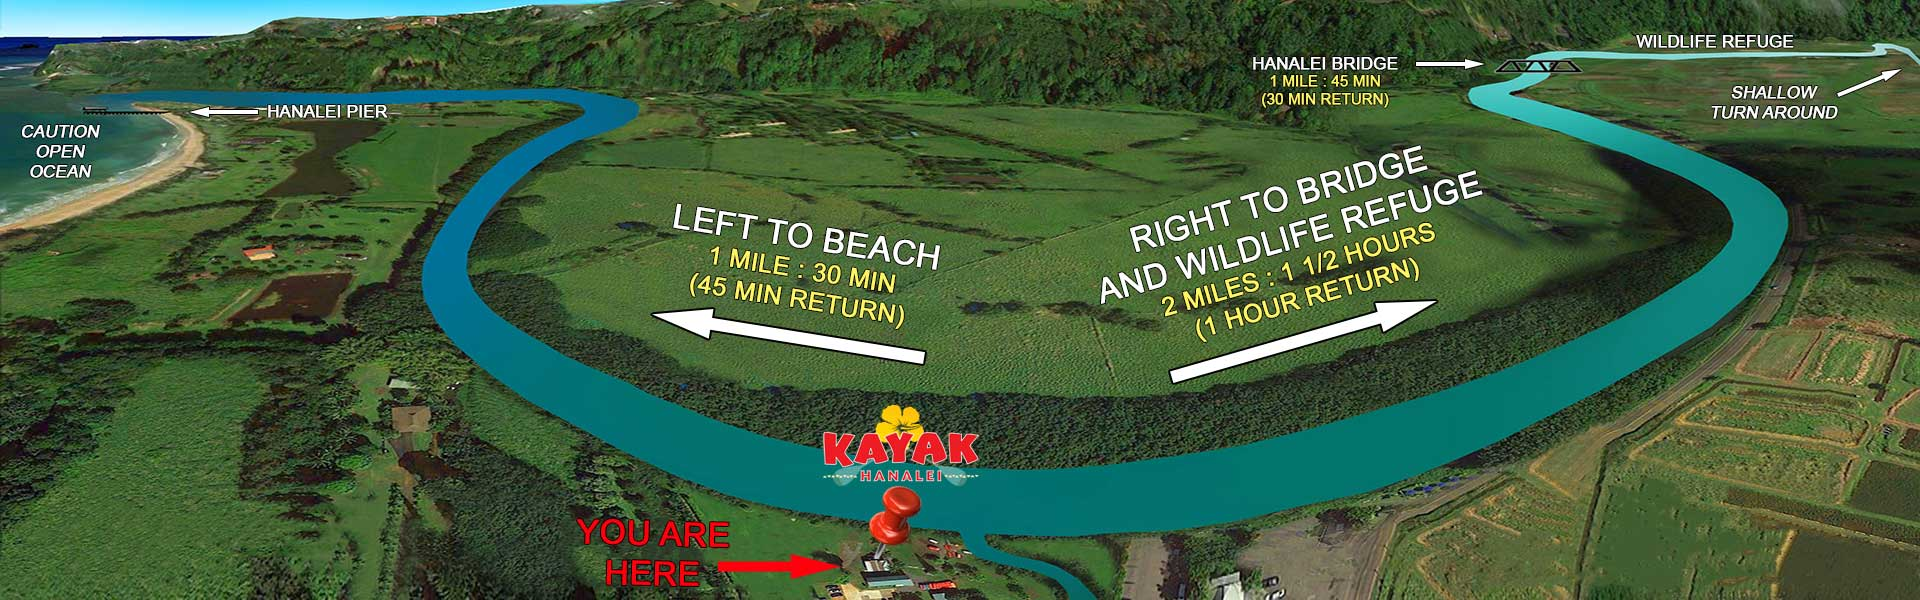 Self-guided Kayak Tour Route